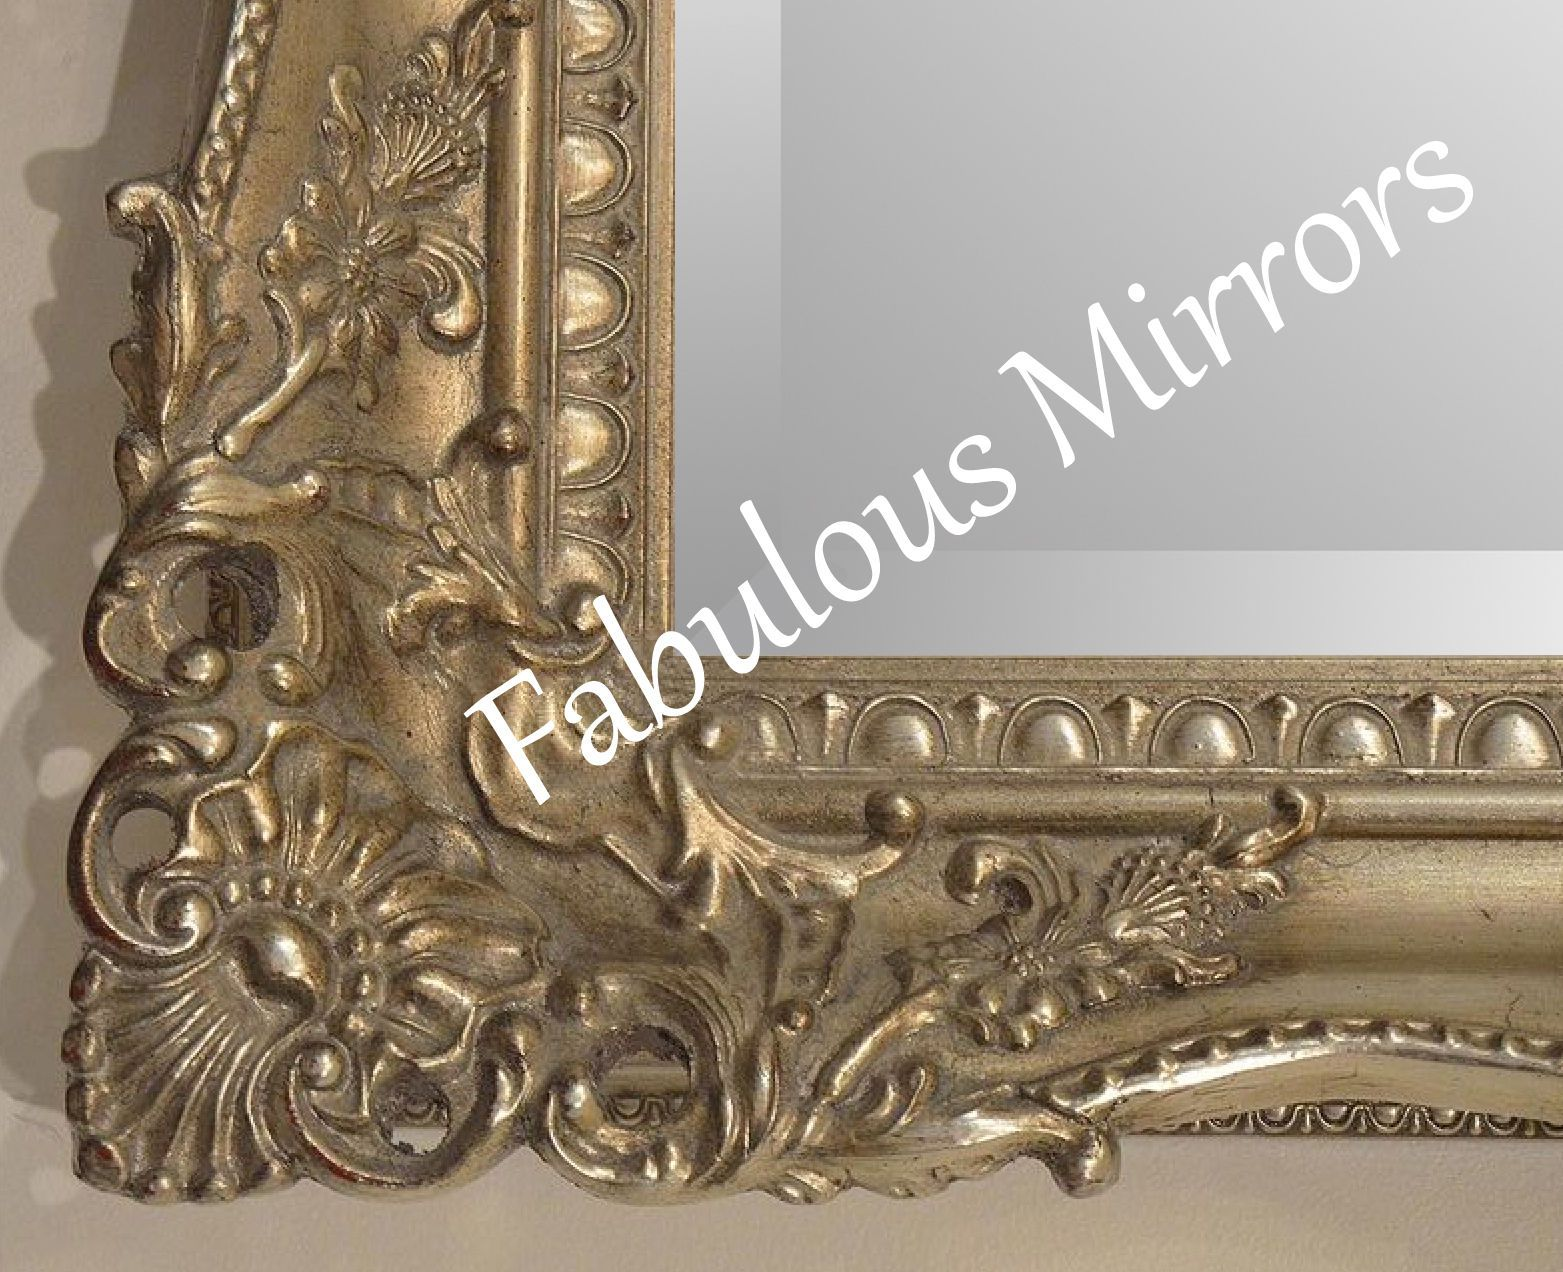 Antique silver shabby chic ornate decorative carved wall mirror antique silver shabby chic ornate decorative carved wall mirror 375 x amipublicfo Choice Image